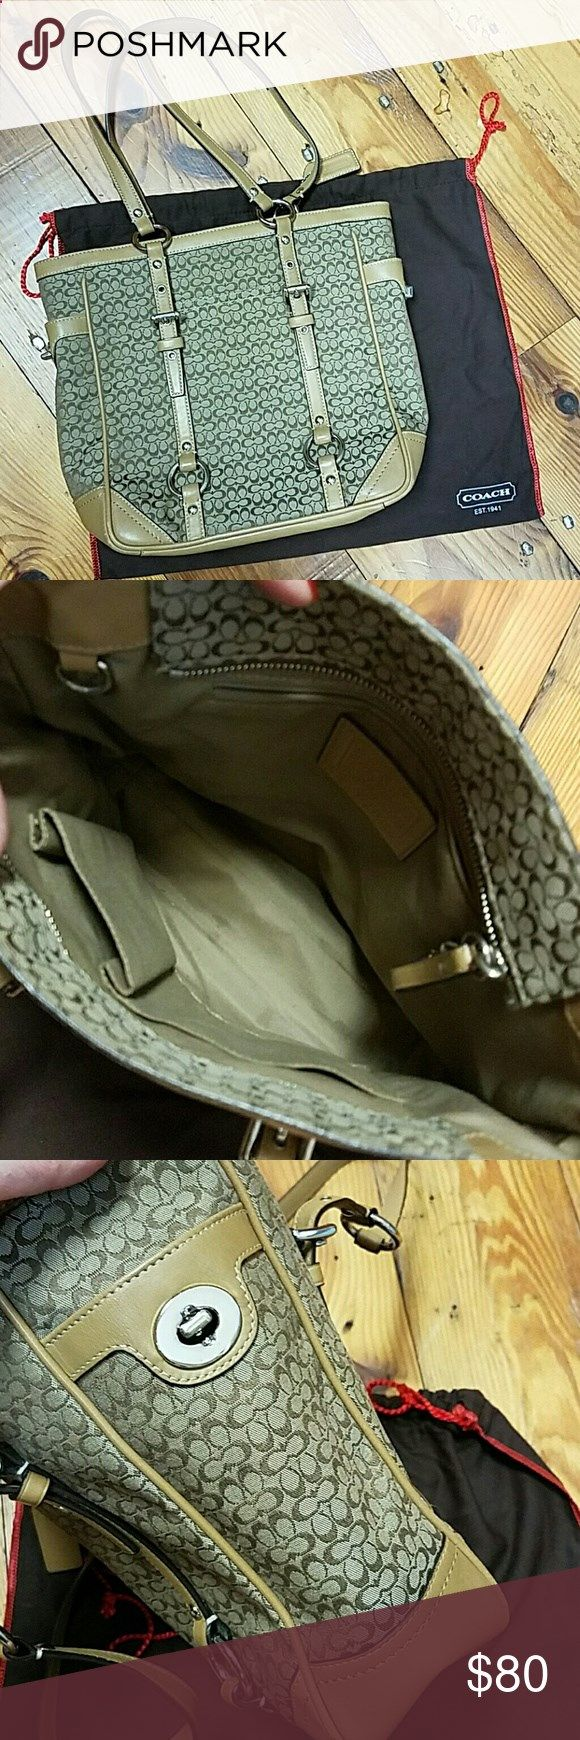 Coach purse Authentic Coach signature purse from Coach store in Annapolis. In like new condition. Tote style shoulder bag. Coach Bags Totes